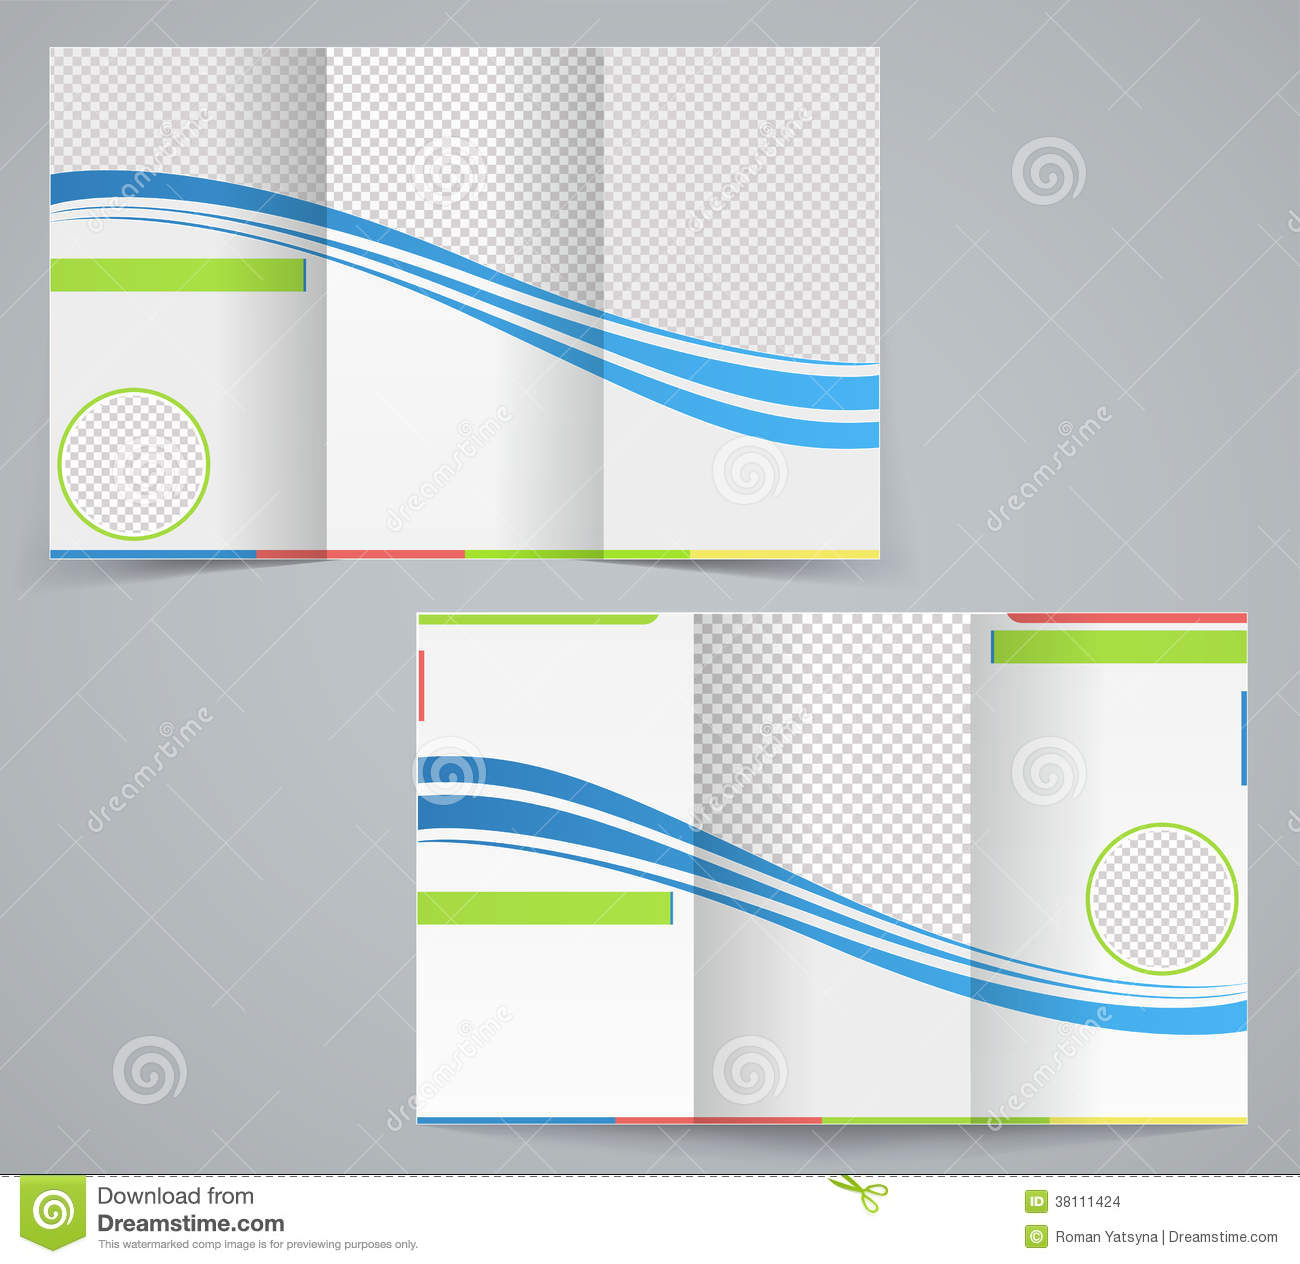 Tri fold business brochure template stock vector for Three fold brochure template free download